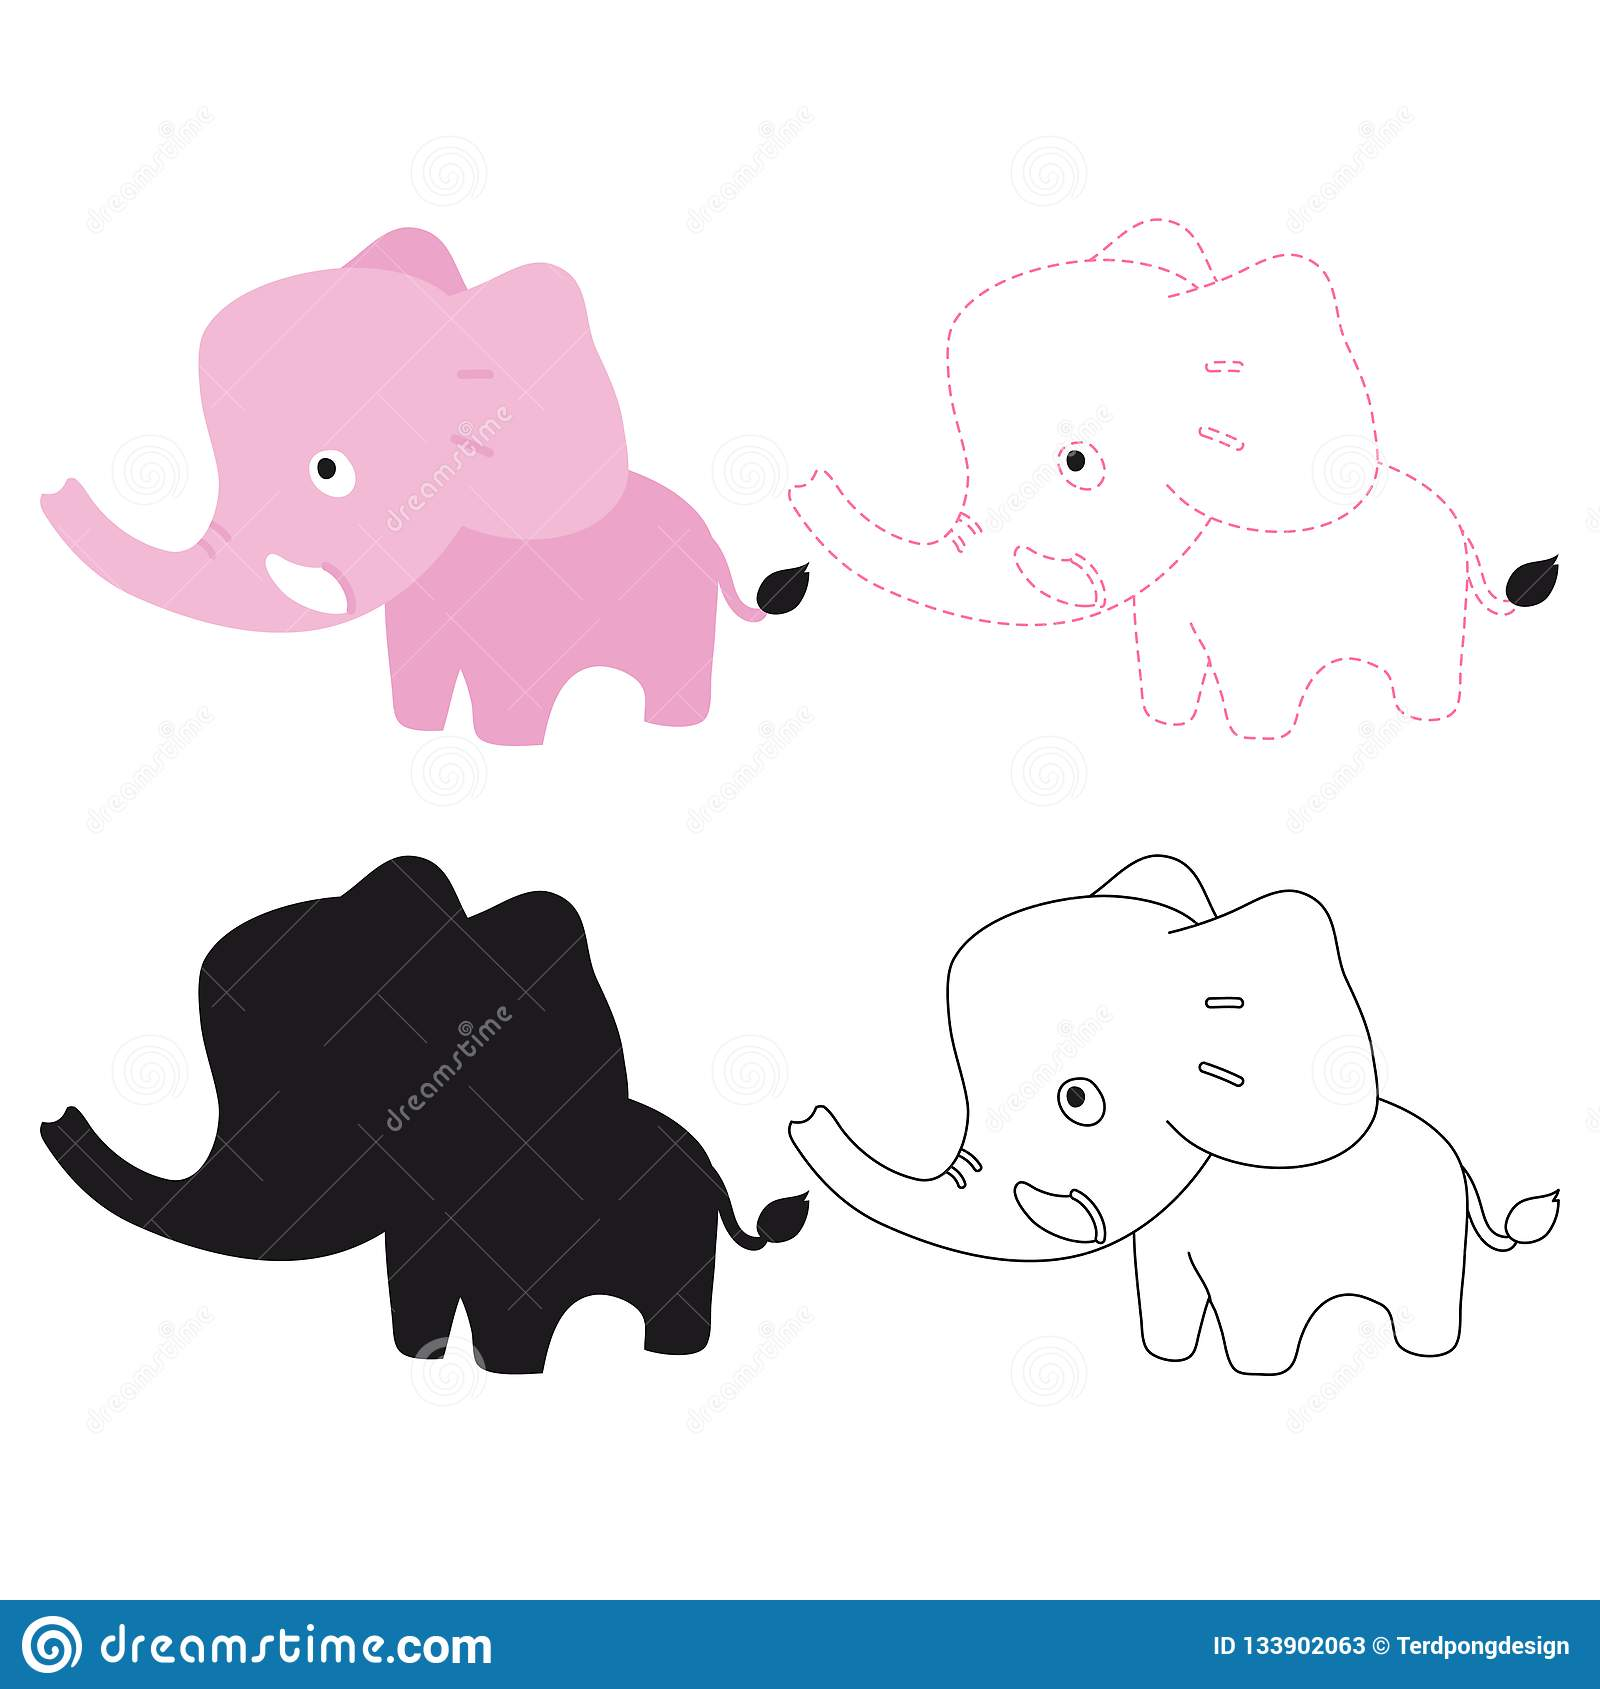 Elephant Worksheet Vector Design Stock Vector